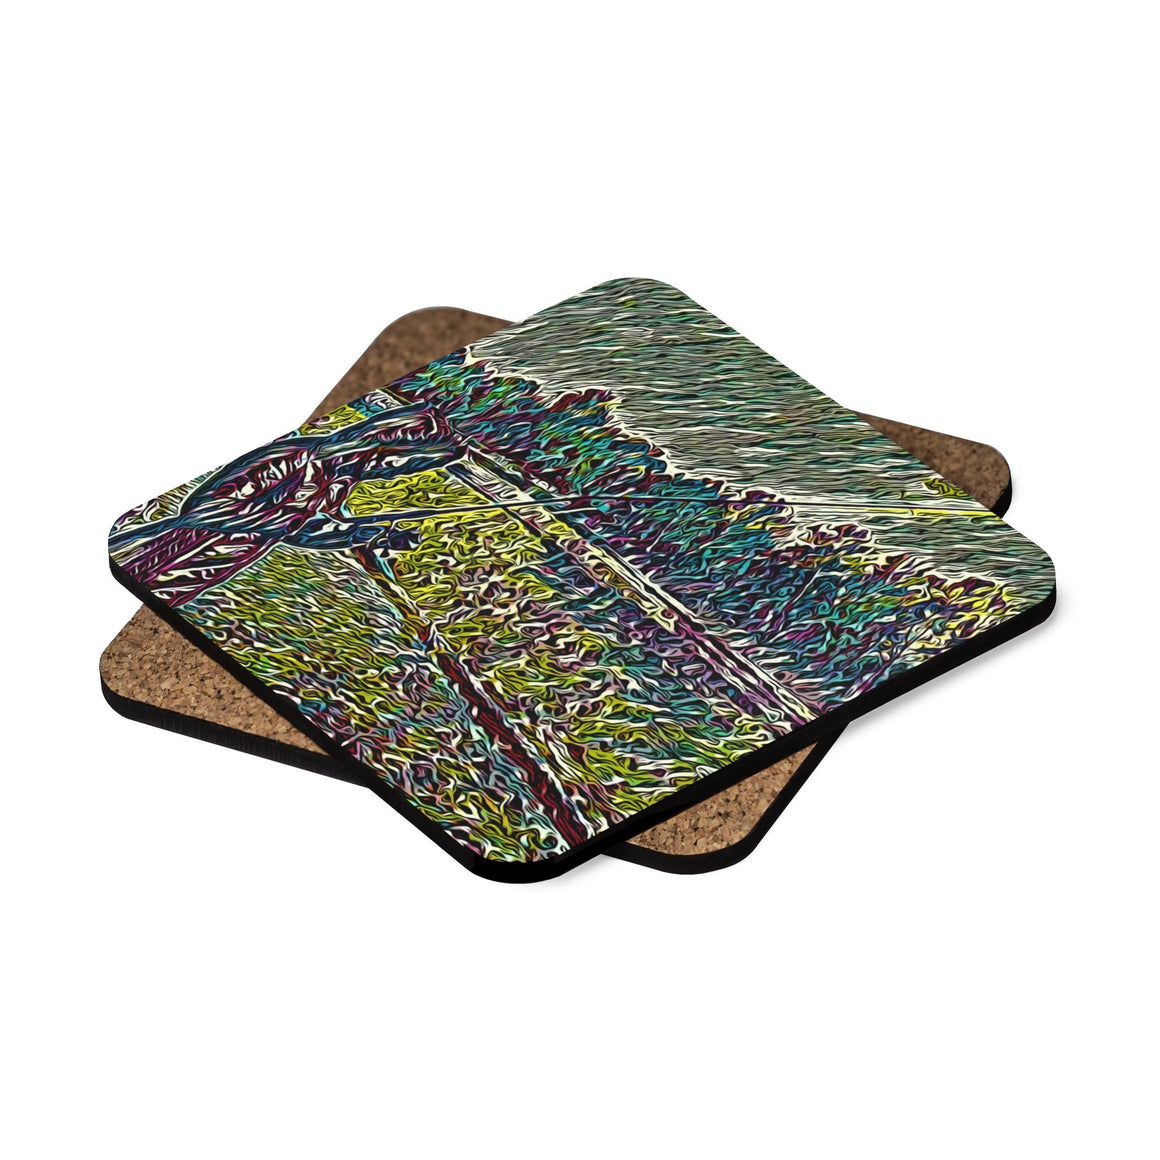 Levi Thang Fishing Design 26 Square Hardboard Coaster Set - 4pcs - I Am A Dreamer